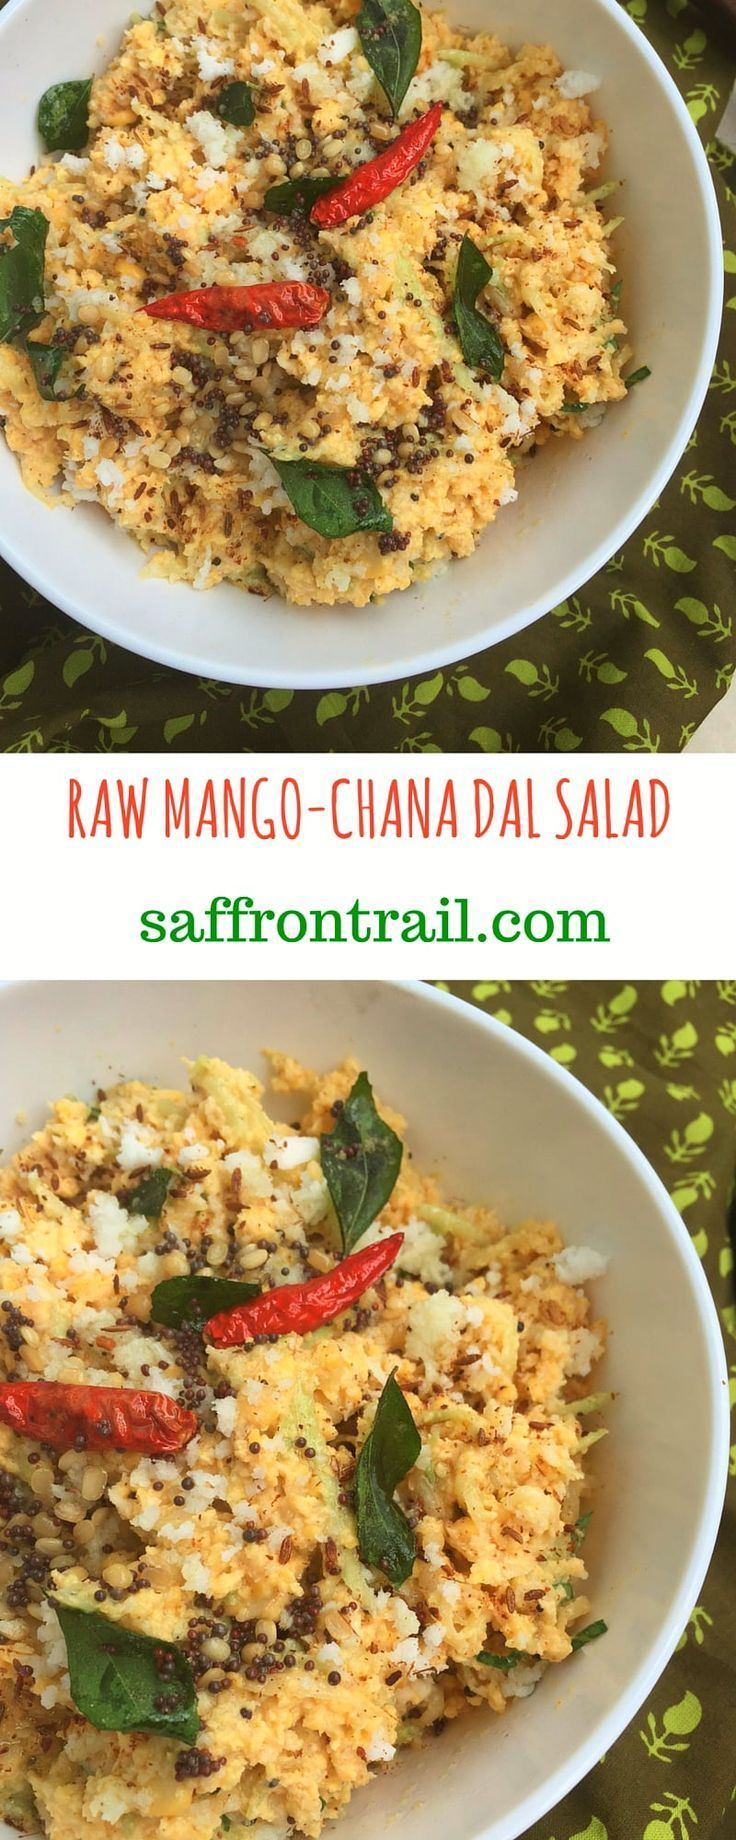 Raw mango chana dal in indian style salad recipe indian meal raw mango chana dal in indian style salad forumfinder Choice Image